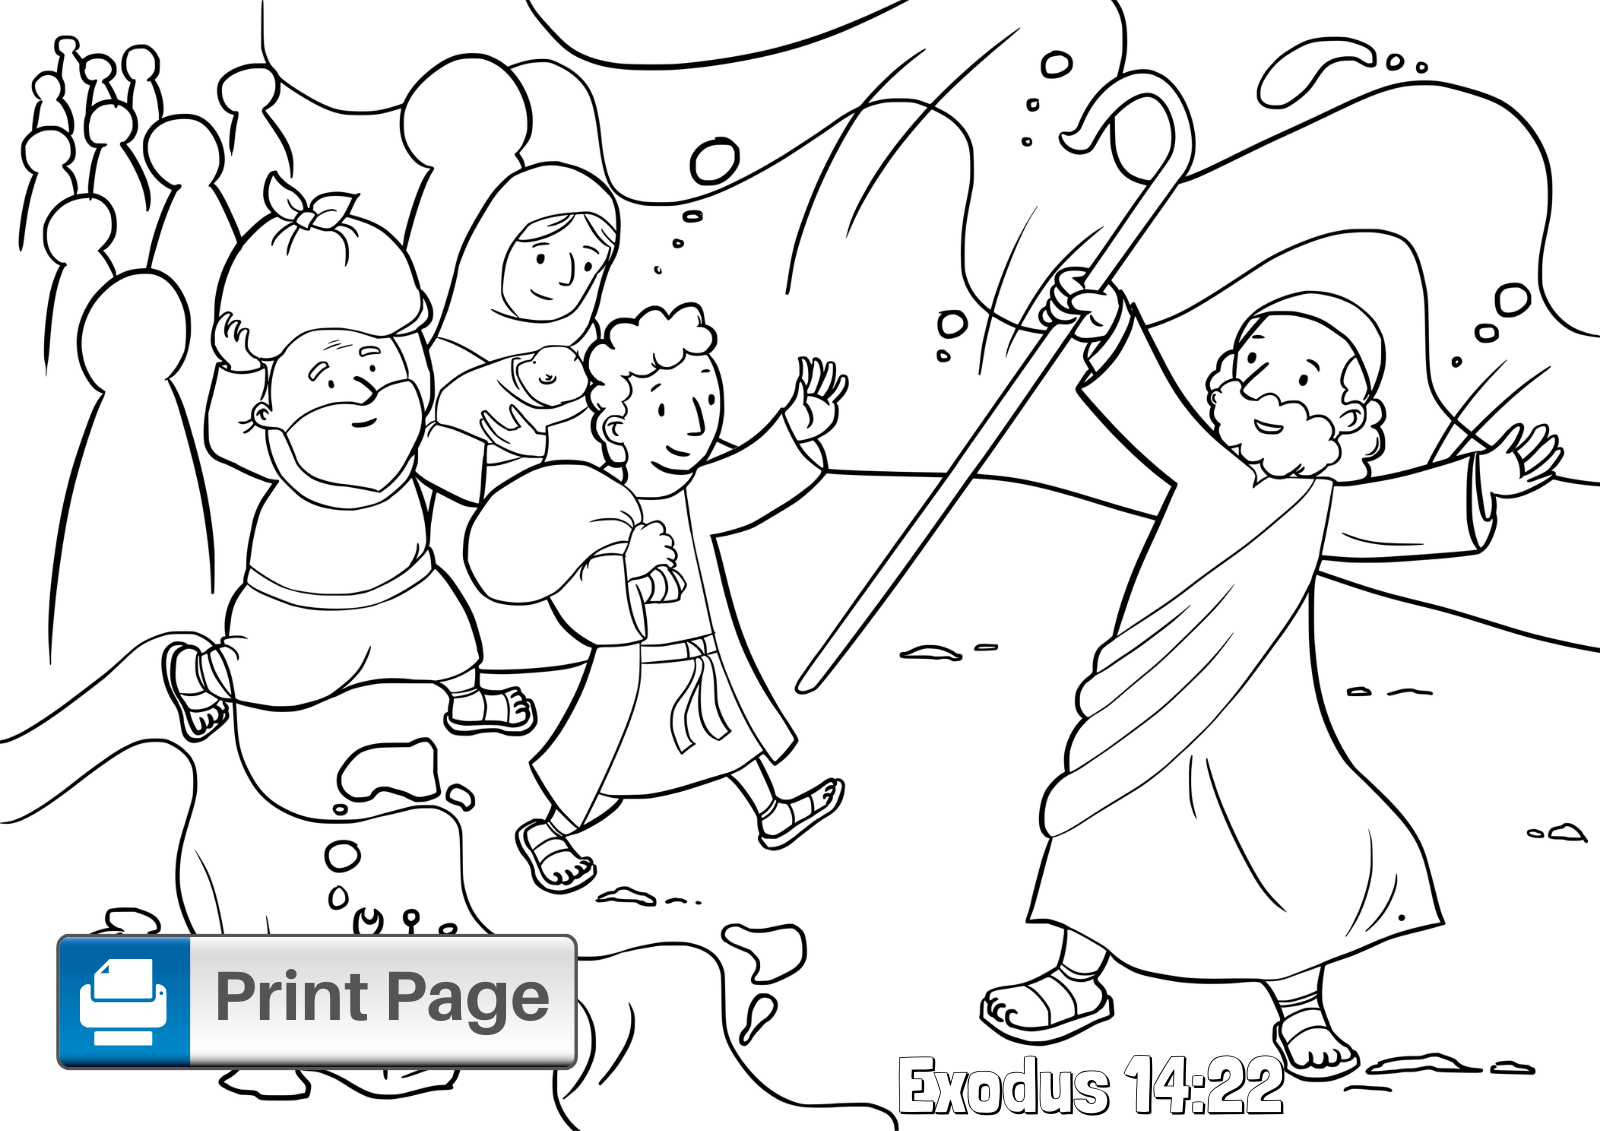 Moses Parts the Red Sea Coloring Page